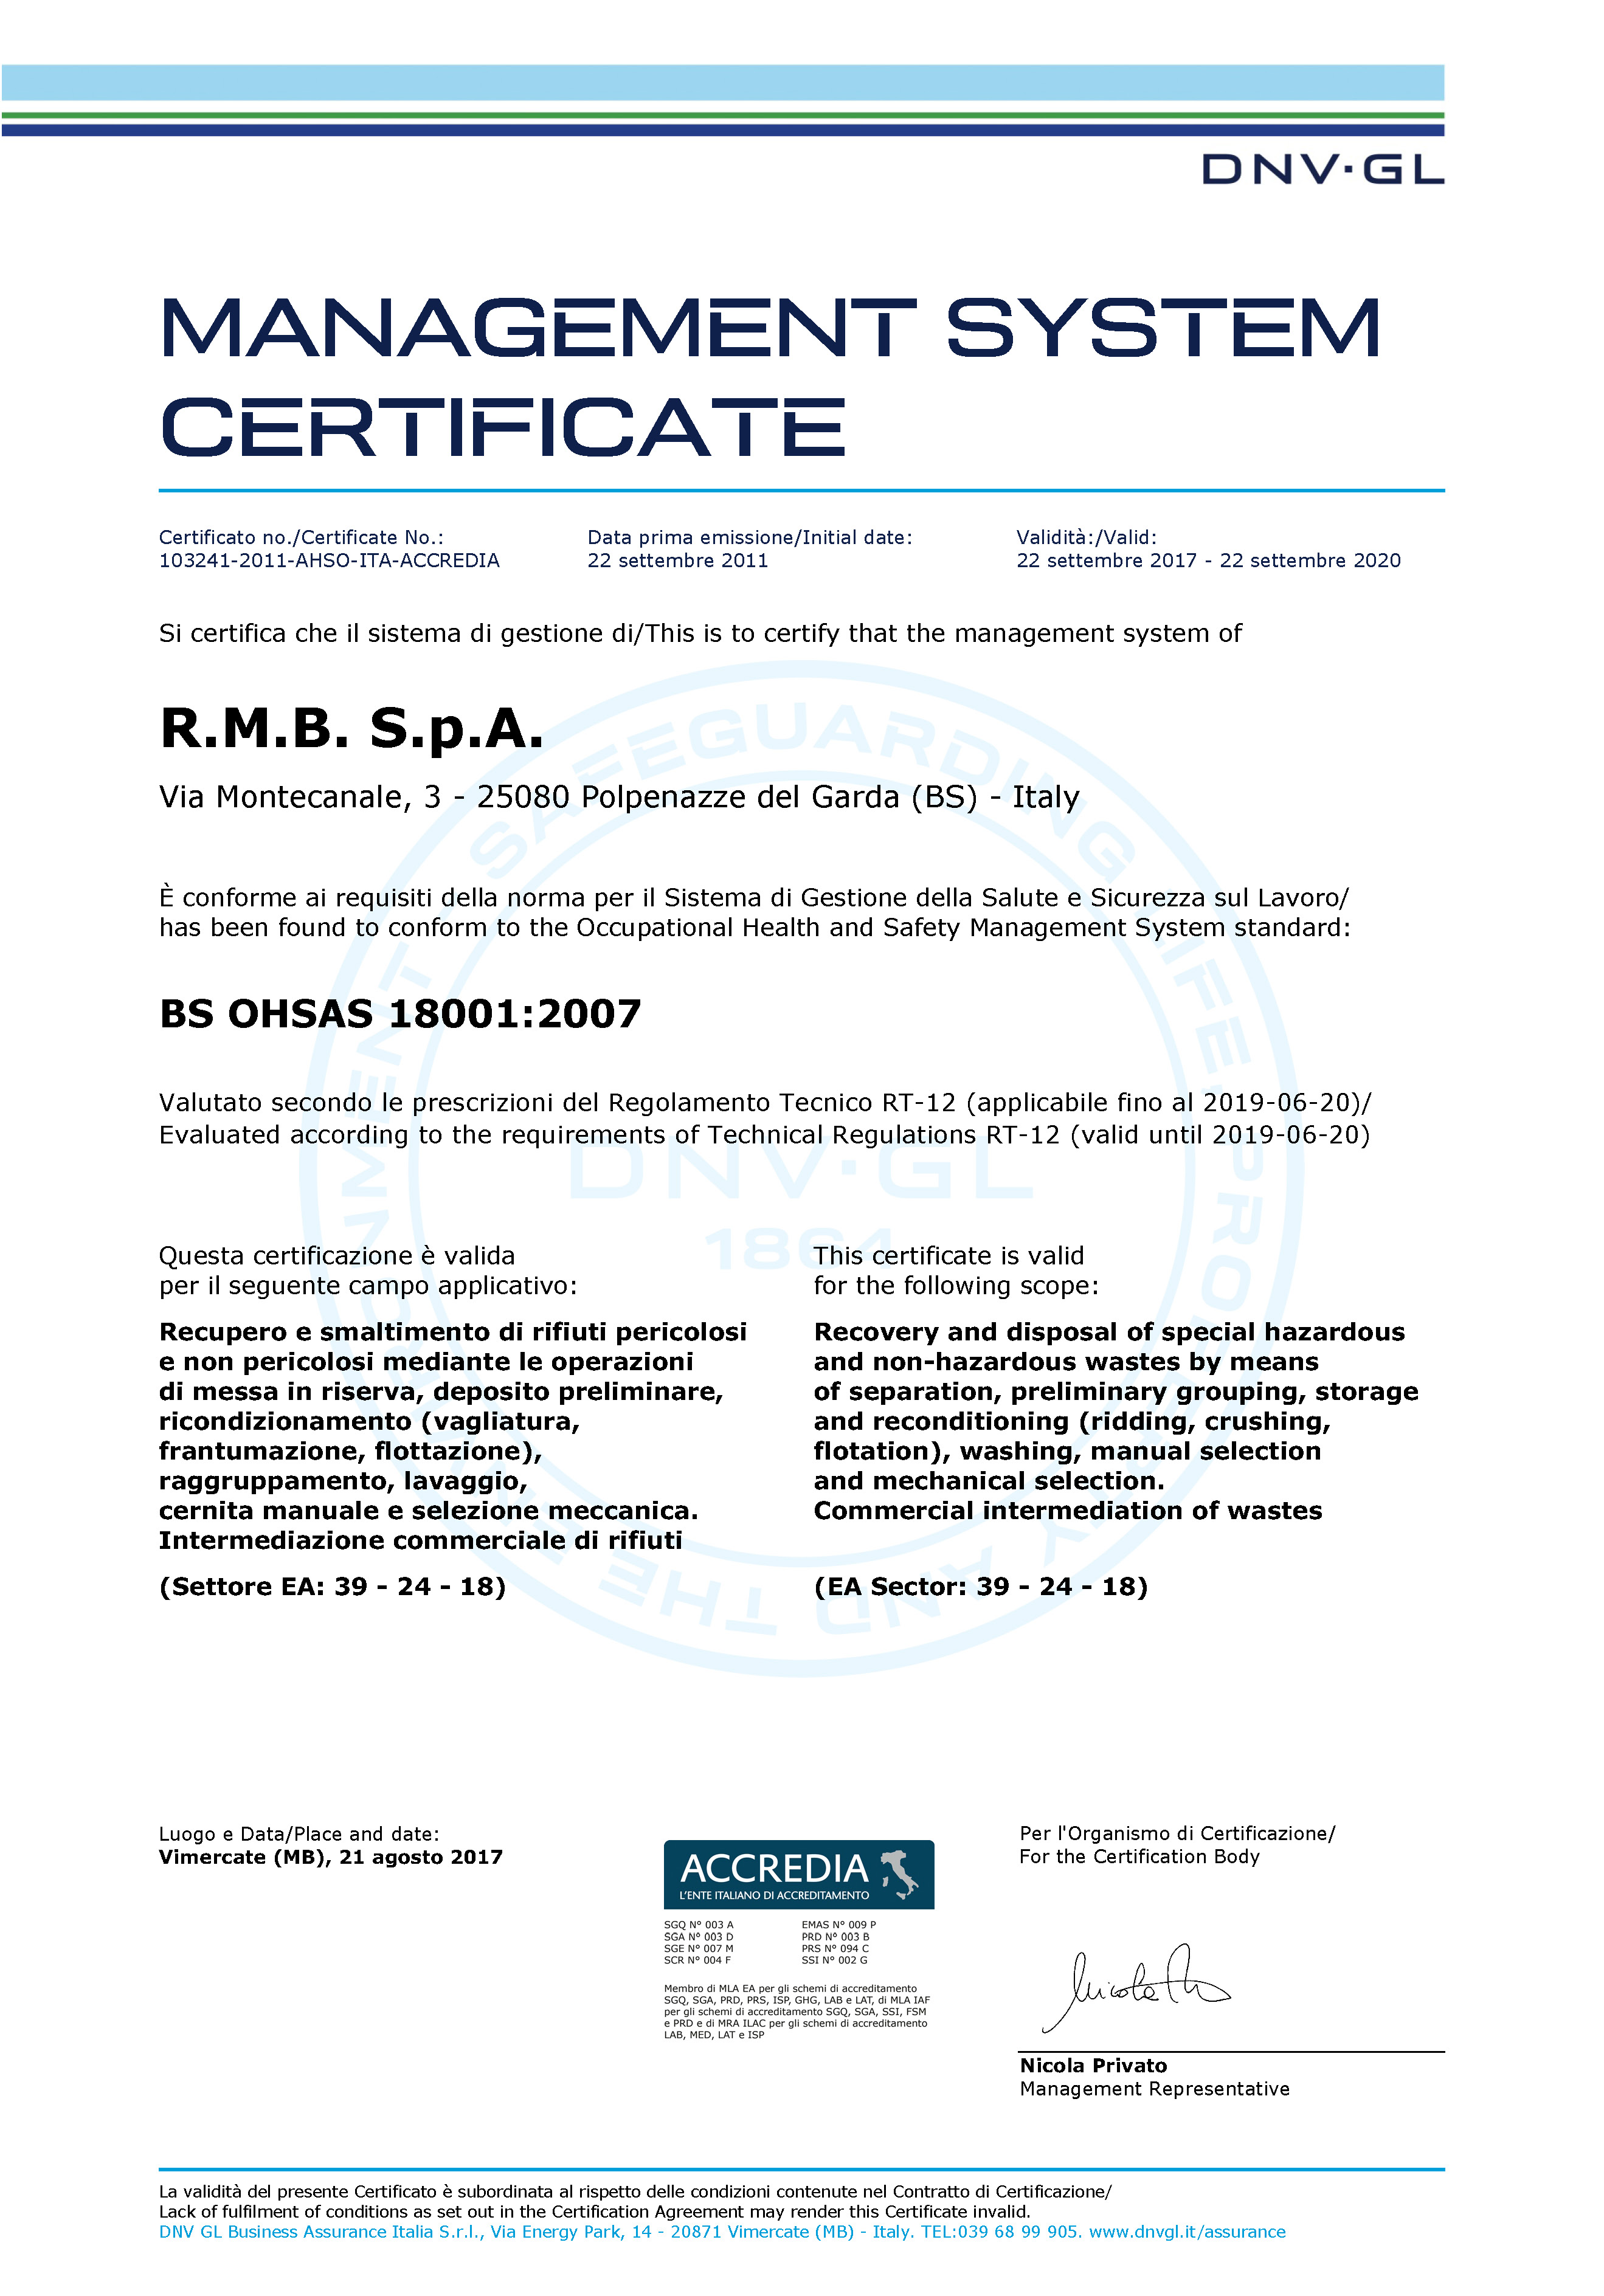 Environmental compatibility and safety certifications dnv uni en iso 180012007 certification soa certification 1betcityfo Image collections